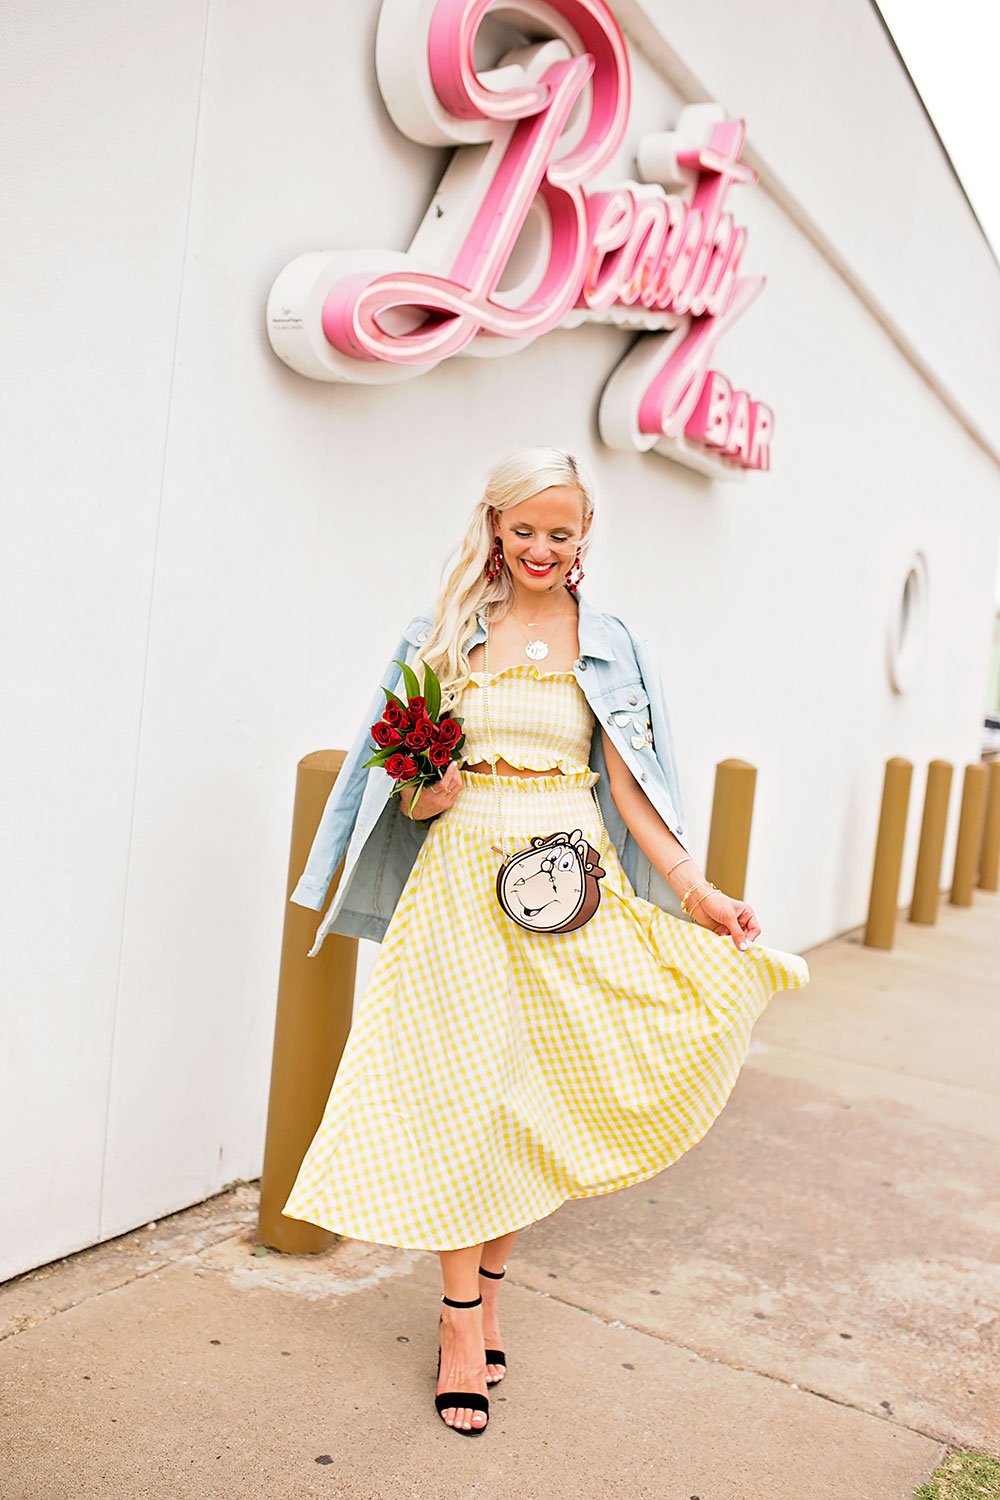 disneybounding belle